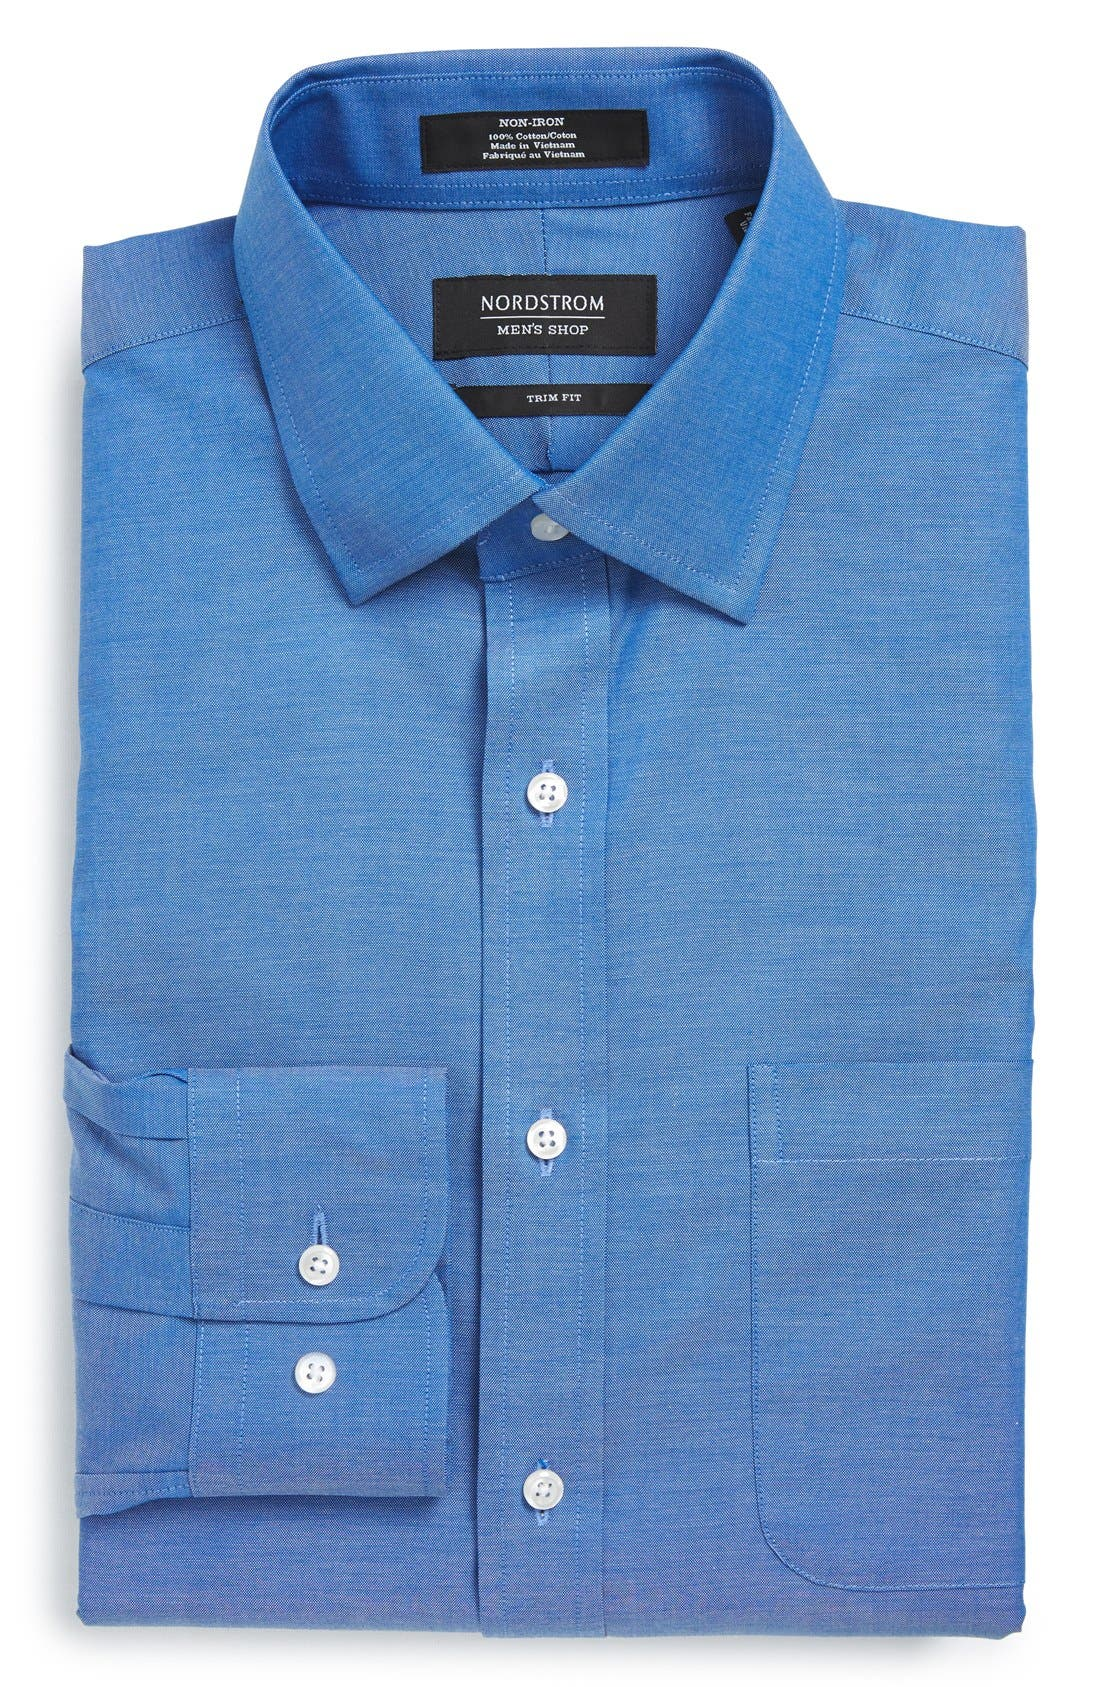 Men's Blue Dress Shirts | Nordstrom